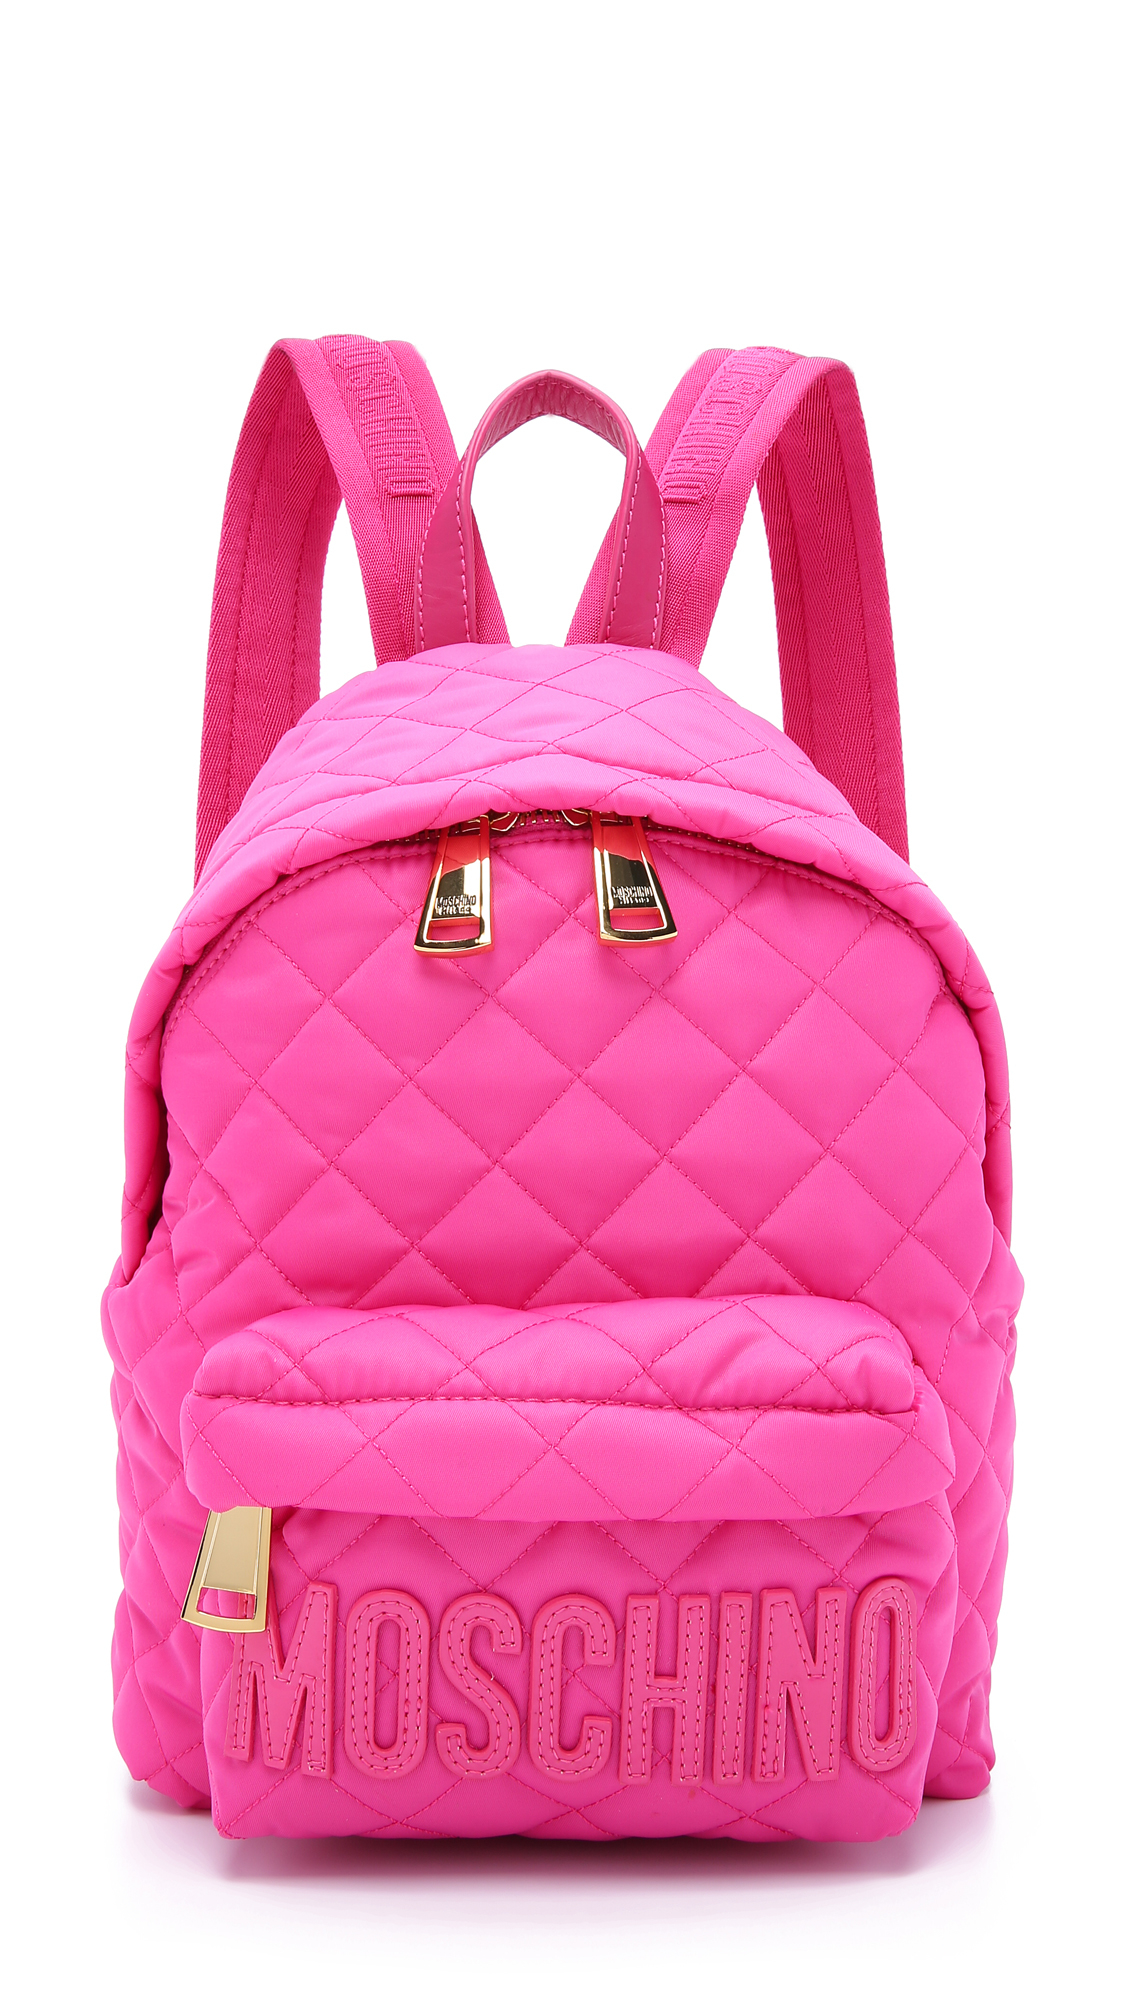 Moschino Backpack Pink In Pink Lyst